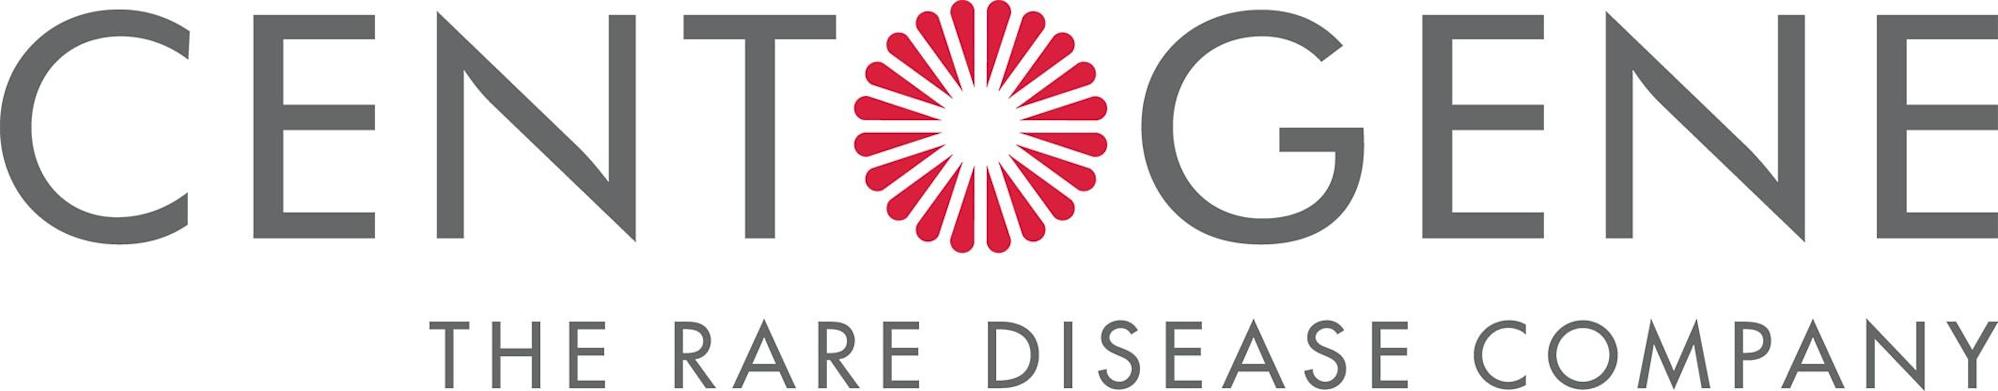 CENTOGENE Appoints Patrice P. Denfle as Chief Scientific Officer to Lead Its Data-Driven Approach to Reinvent Rare Disease Drug Discovery and Development